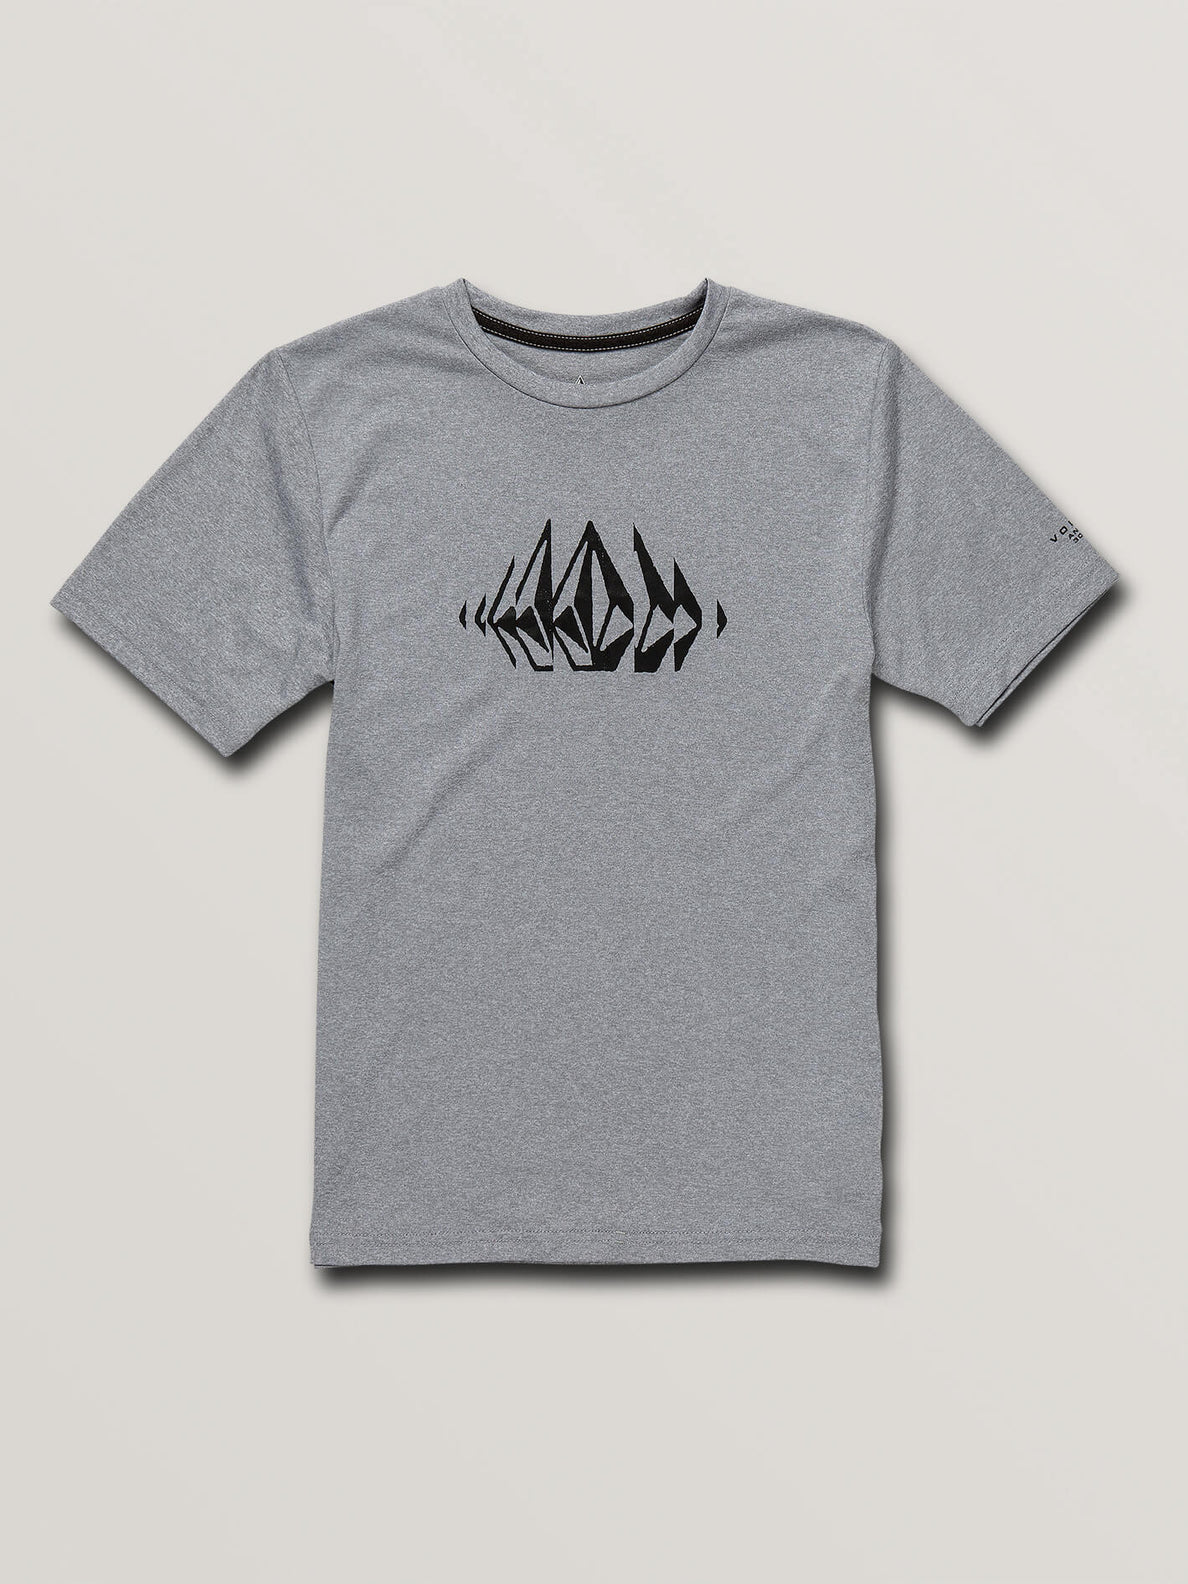 Big Boys Sounder Short Sleeve Rashguard In Pewter, Front View